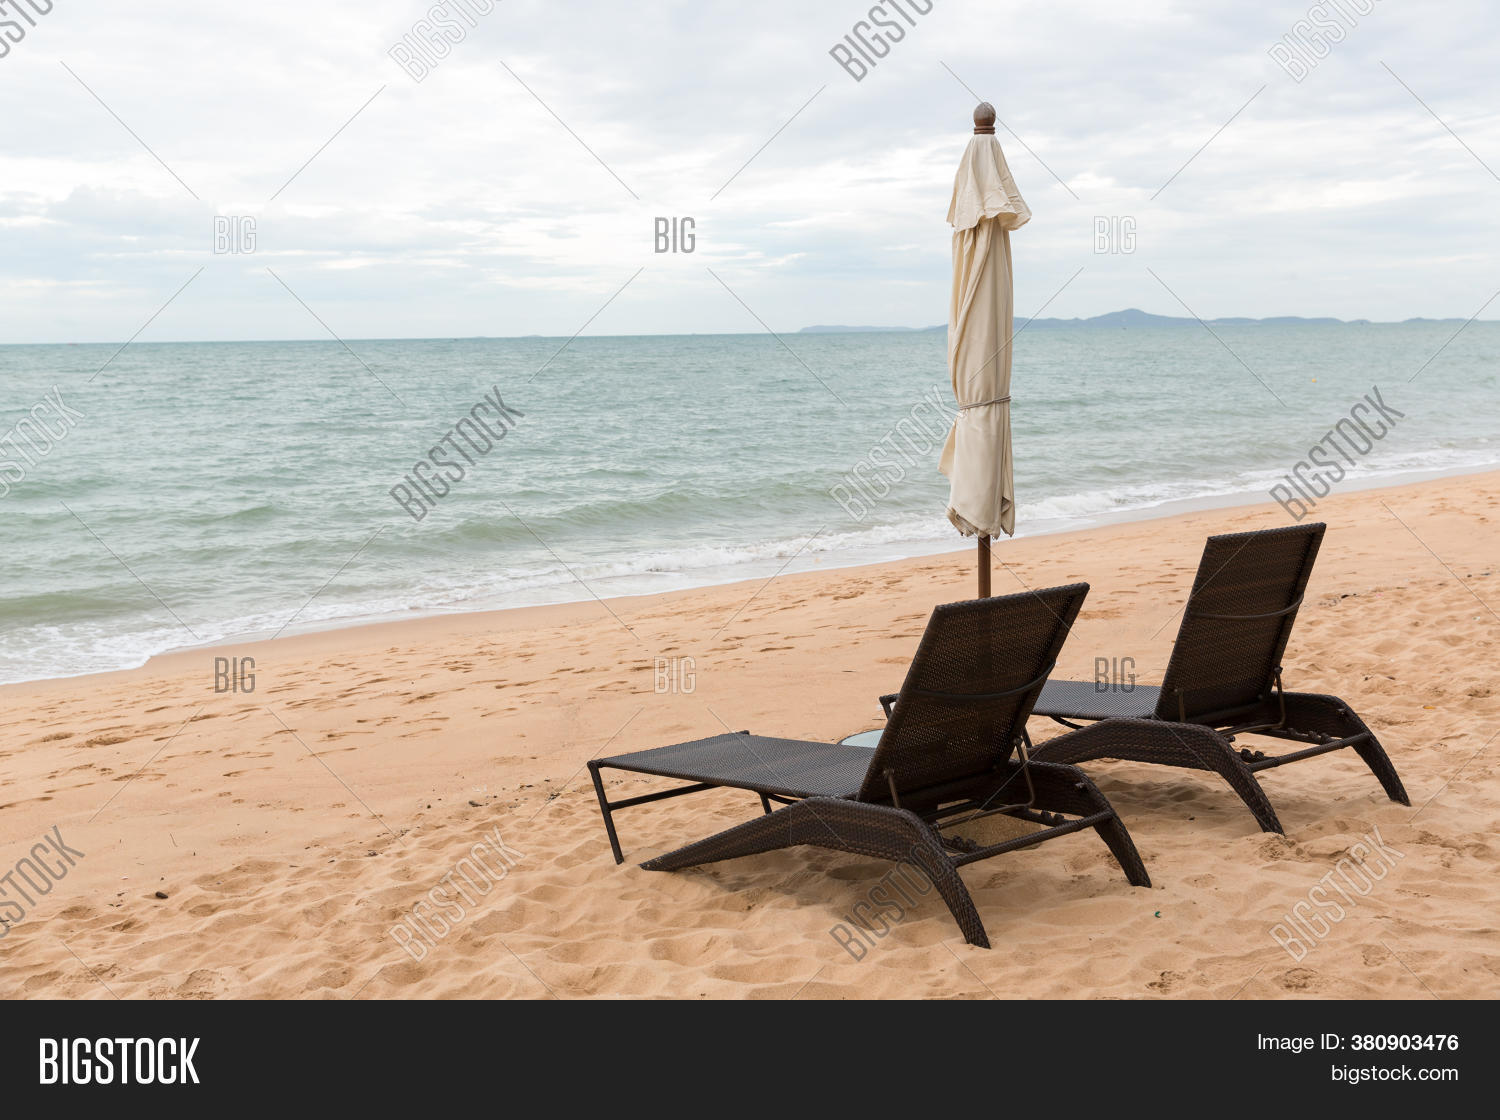 Beach Chair Big Image Photo Free Trial Bigstock